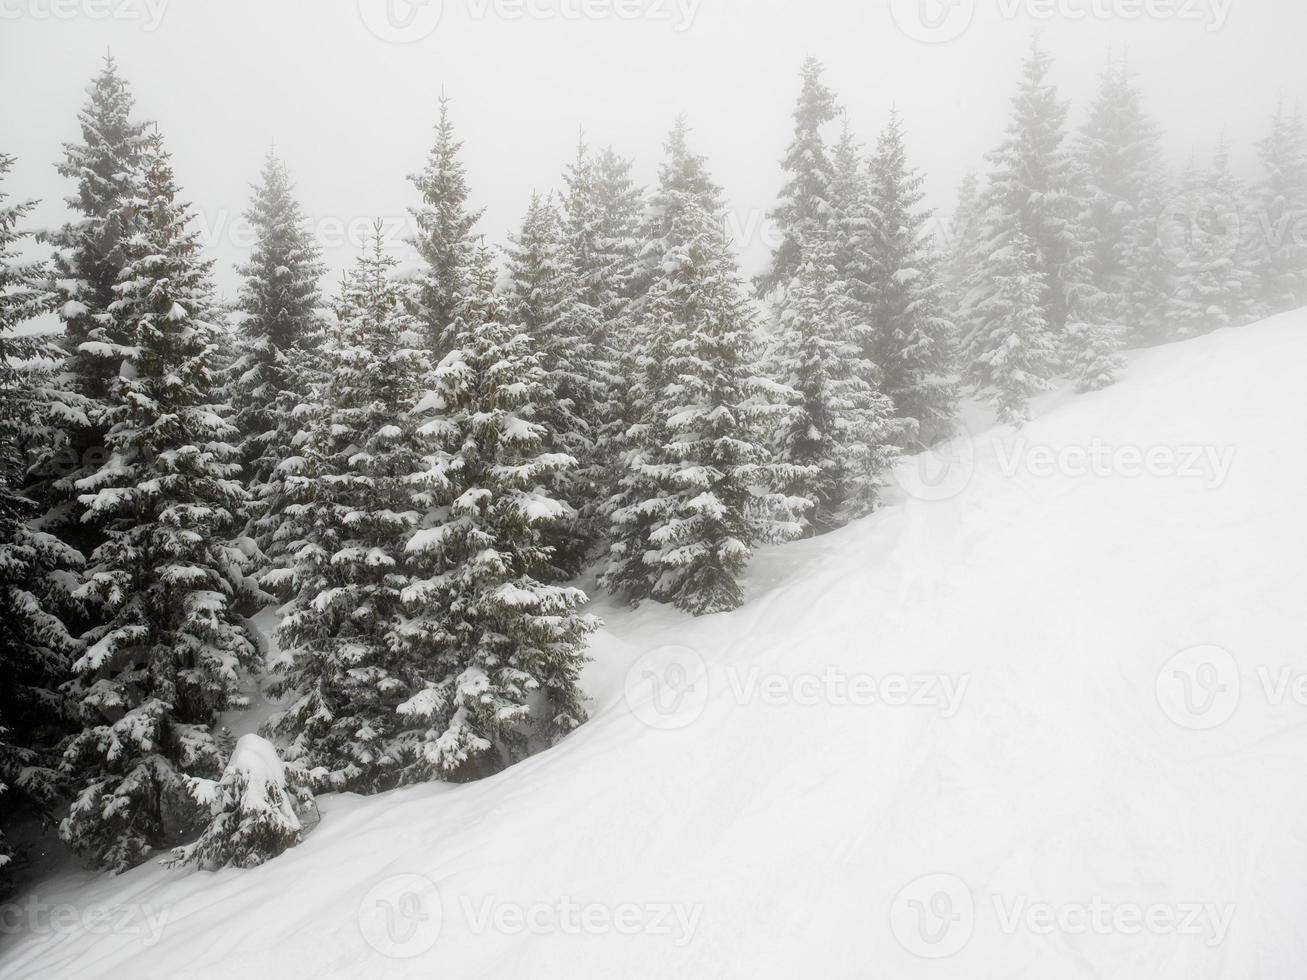 snow covered trees in mist photo